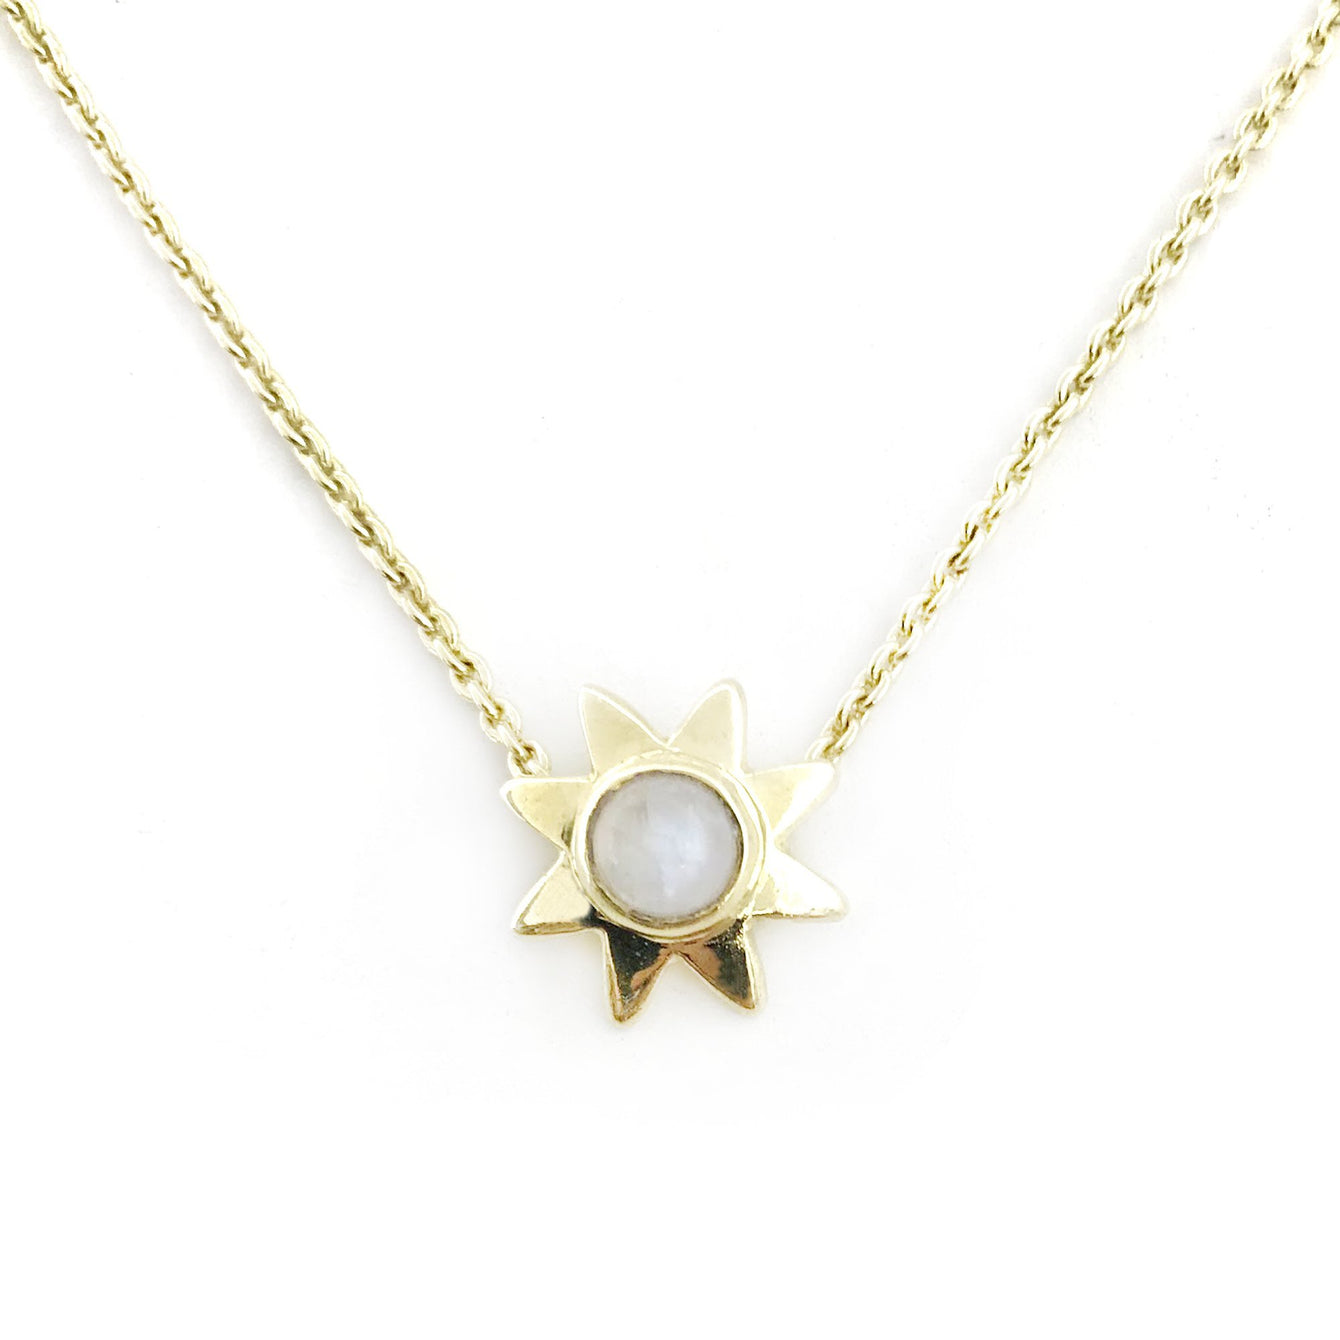 Starr Genuine Gemstone Pendant Necklaces-Women - Jewelry - Necklaces-ADDISON WEEKS-Moonstone-Peccadilly